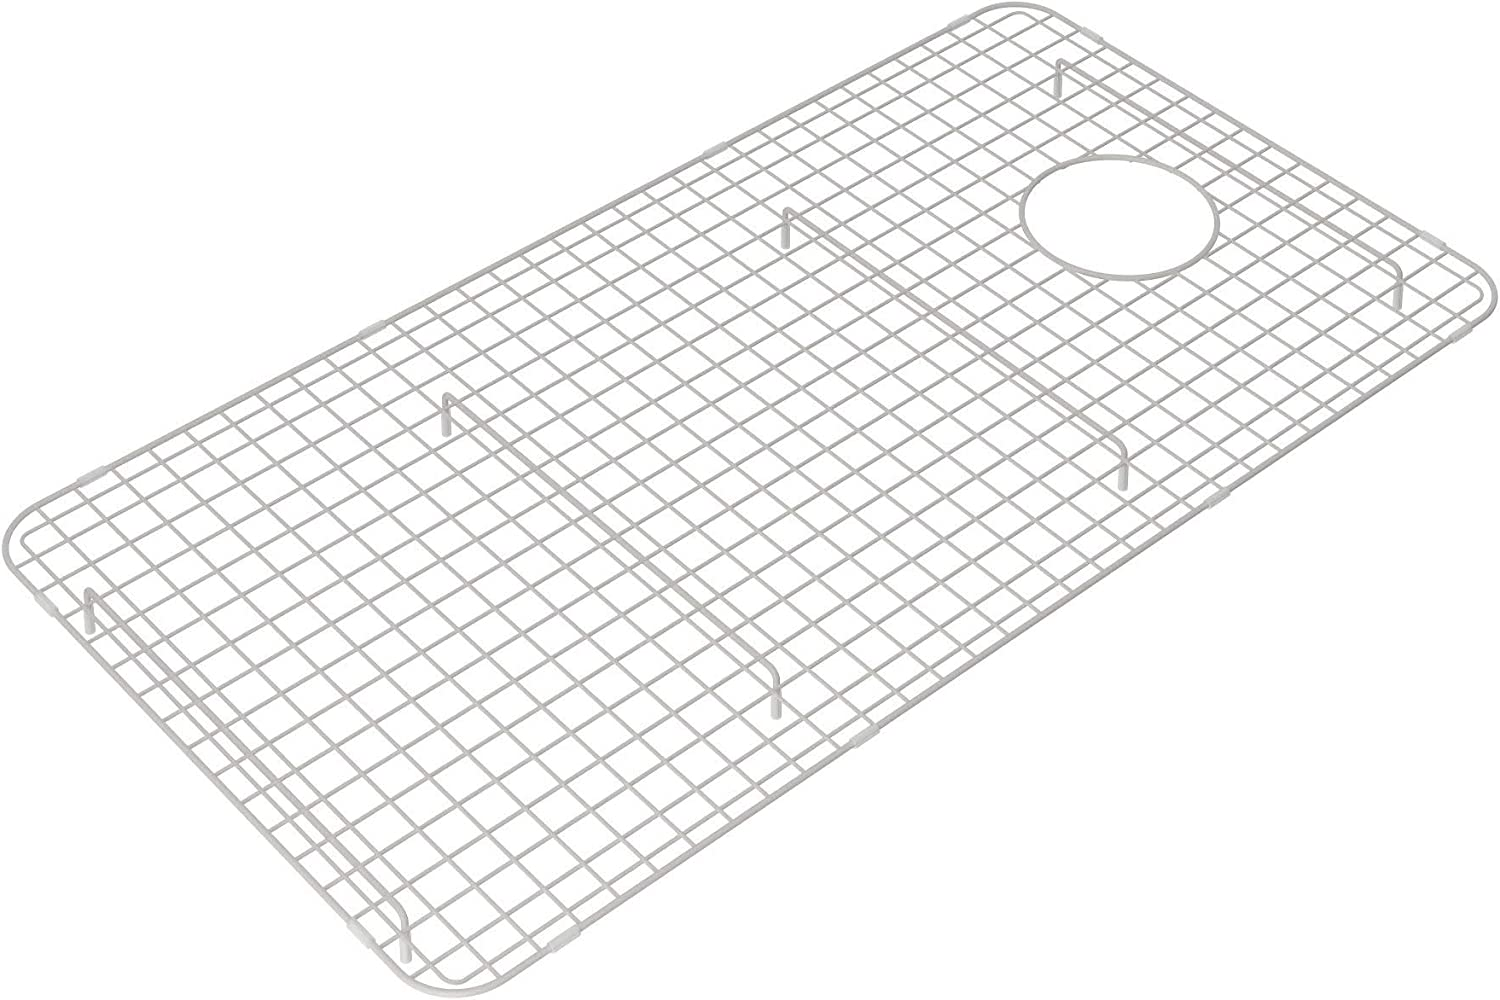 ROHL Wire Charlotte Mall Sink Overseas parallel import regular item Grid for ALF3620 in Kitchen Biscuit